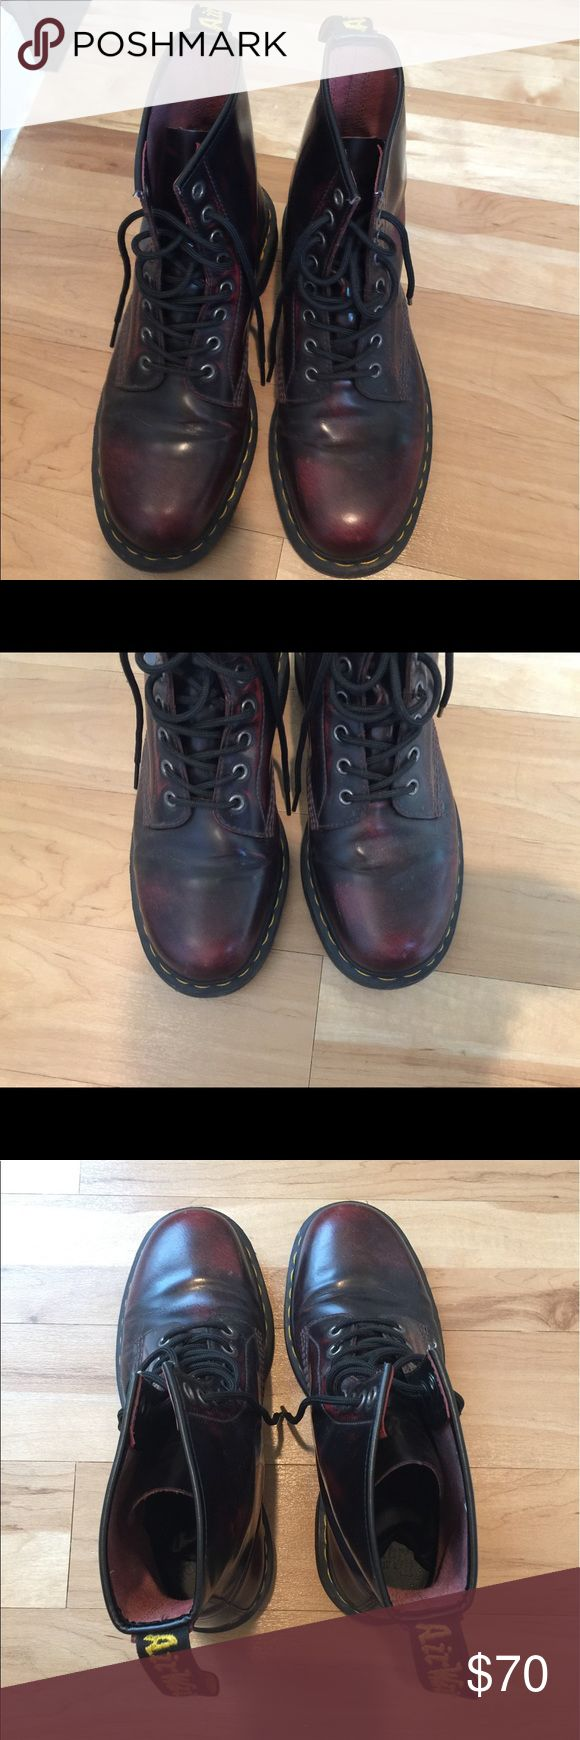 Dr Martens Men's Boots, Size US 9M Perfect condition. Size see last photo. Feel free to request more close up photos. Dr. Martens Shoes Boots